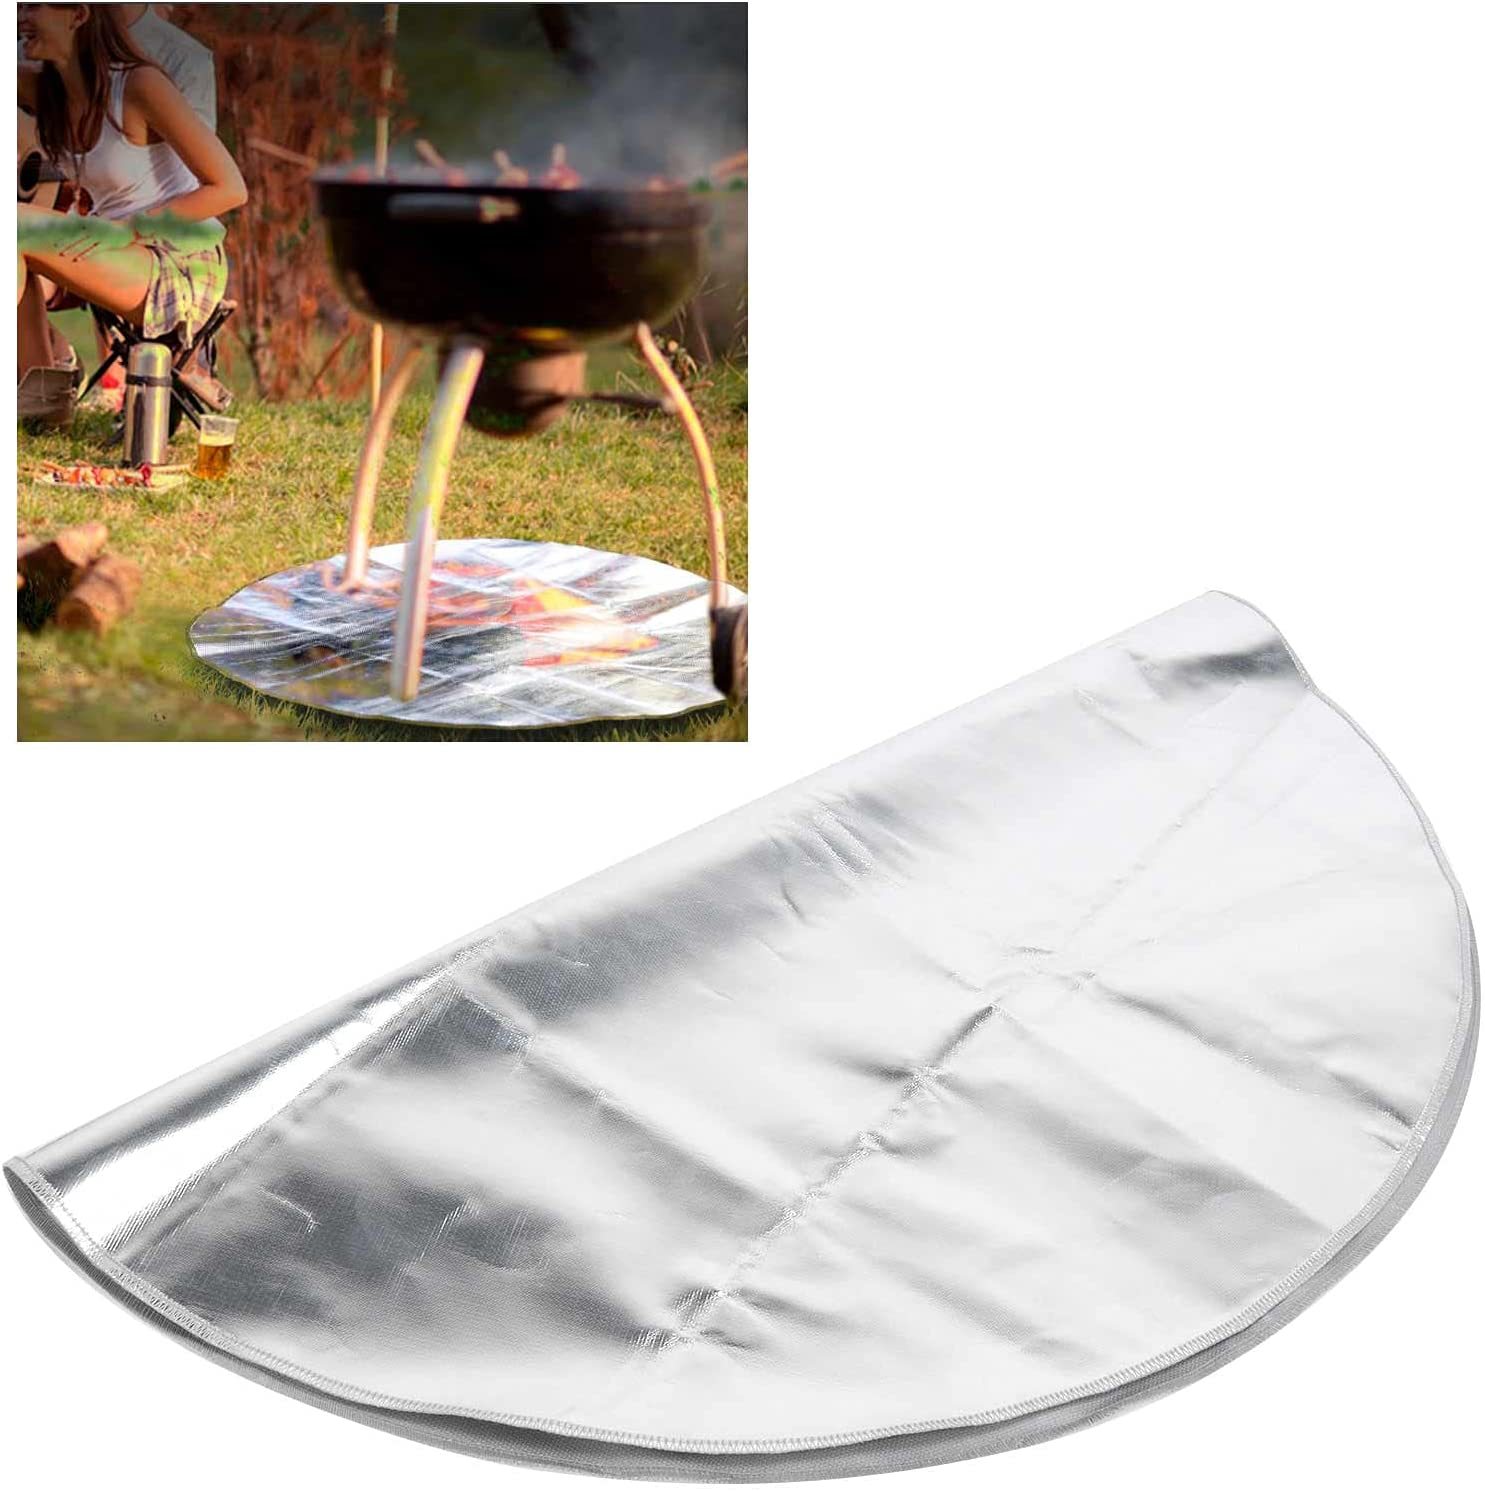 BOLORAMO Fire Pit Factory outlet Mat fo Protector Mail order Heat‑Resistant